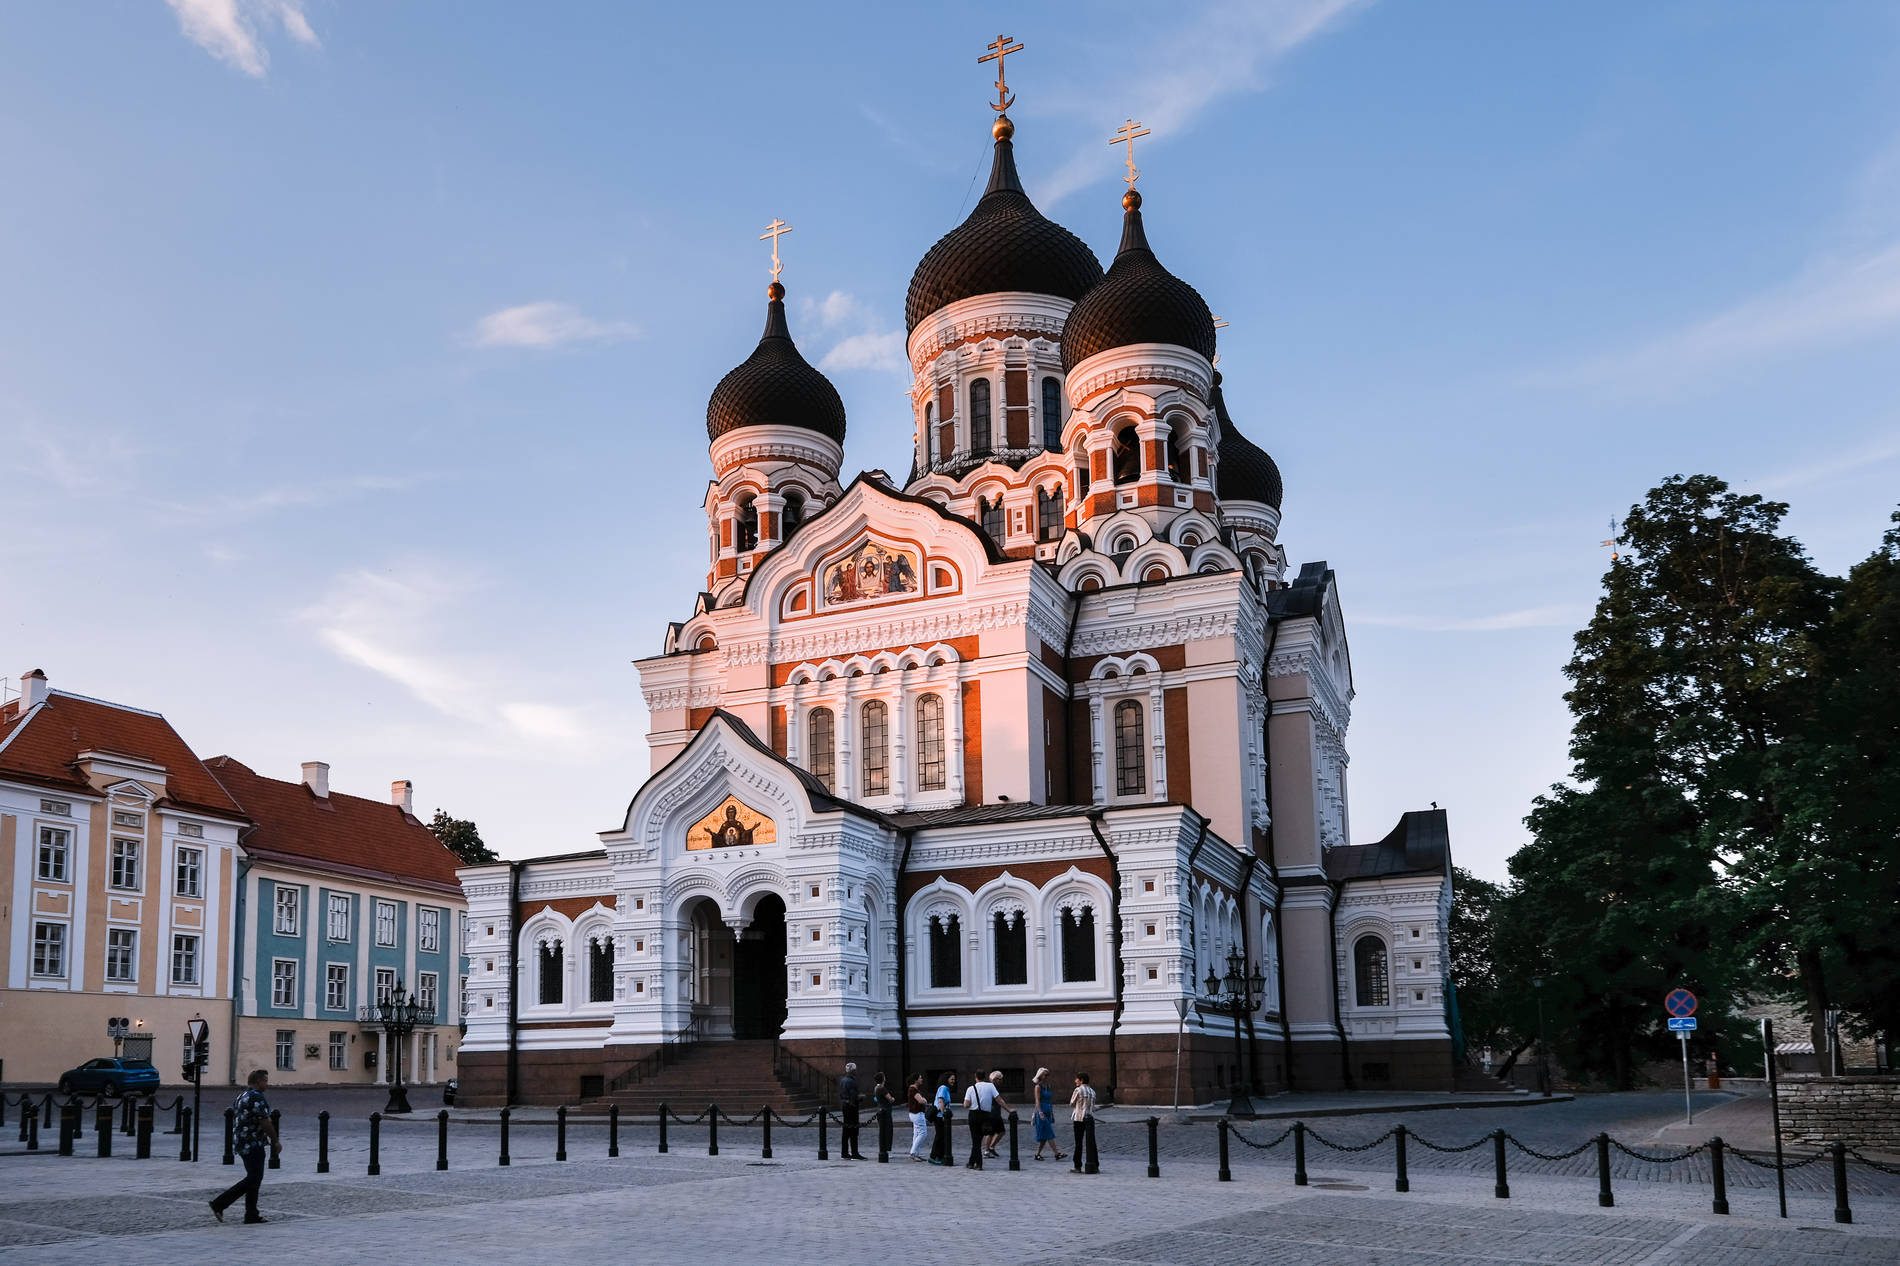 St. Alexander Nevsky Cathedral in Tallinn, Estonia